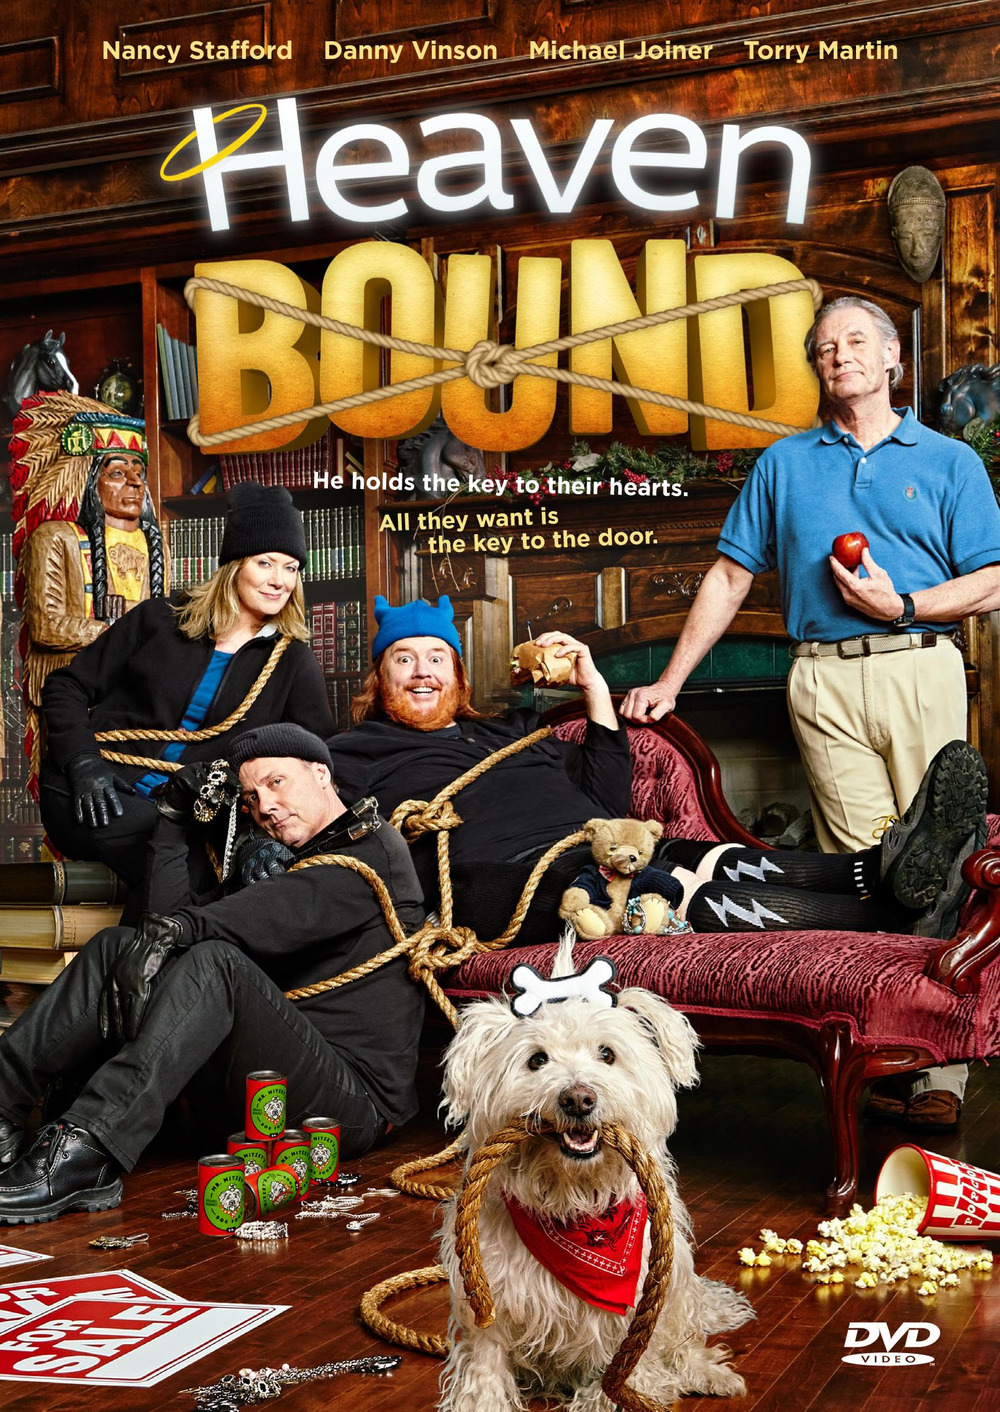 The Official Heaven Bound DVD cover.